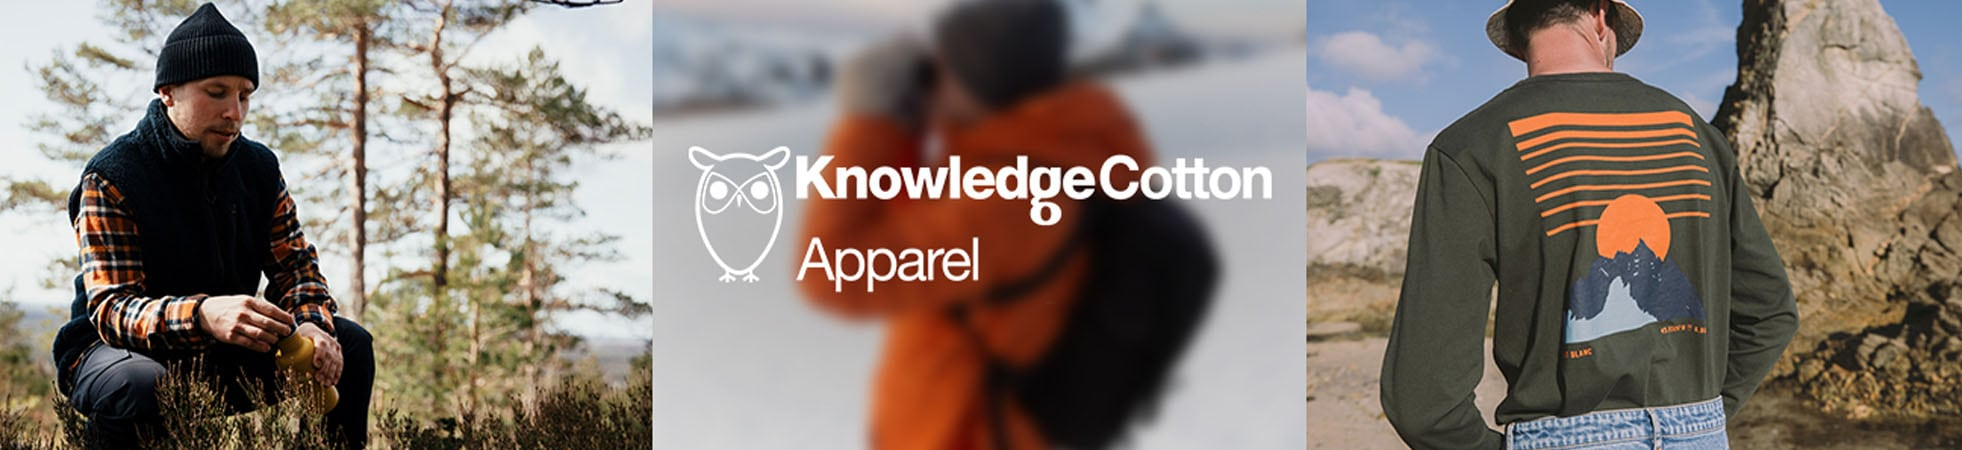 KnowledgeCotton Apparel Jassen